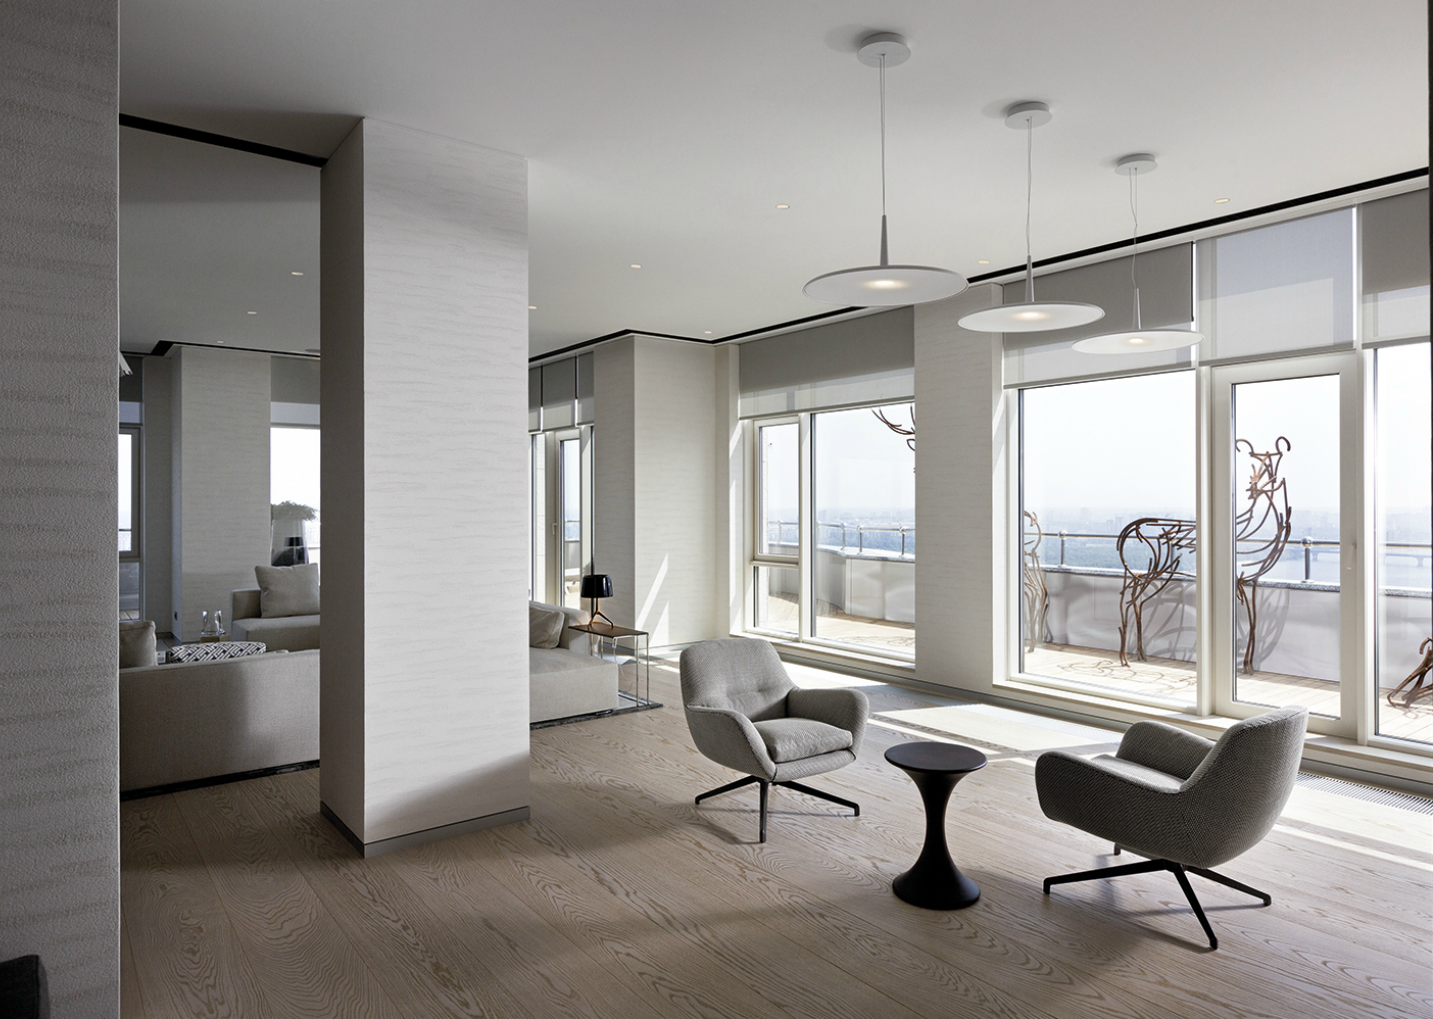 penthouse furniture. Serene Kiev Penthouse 3 A Luxurious And Exquisite Furniture